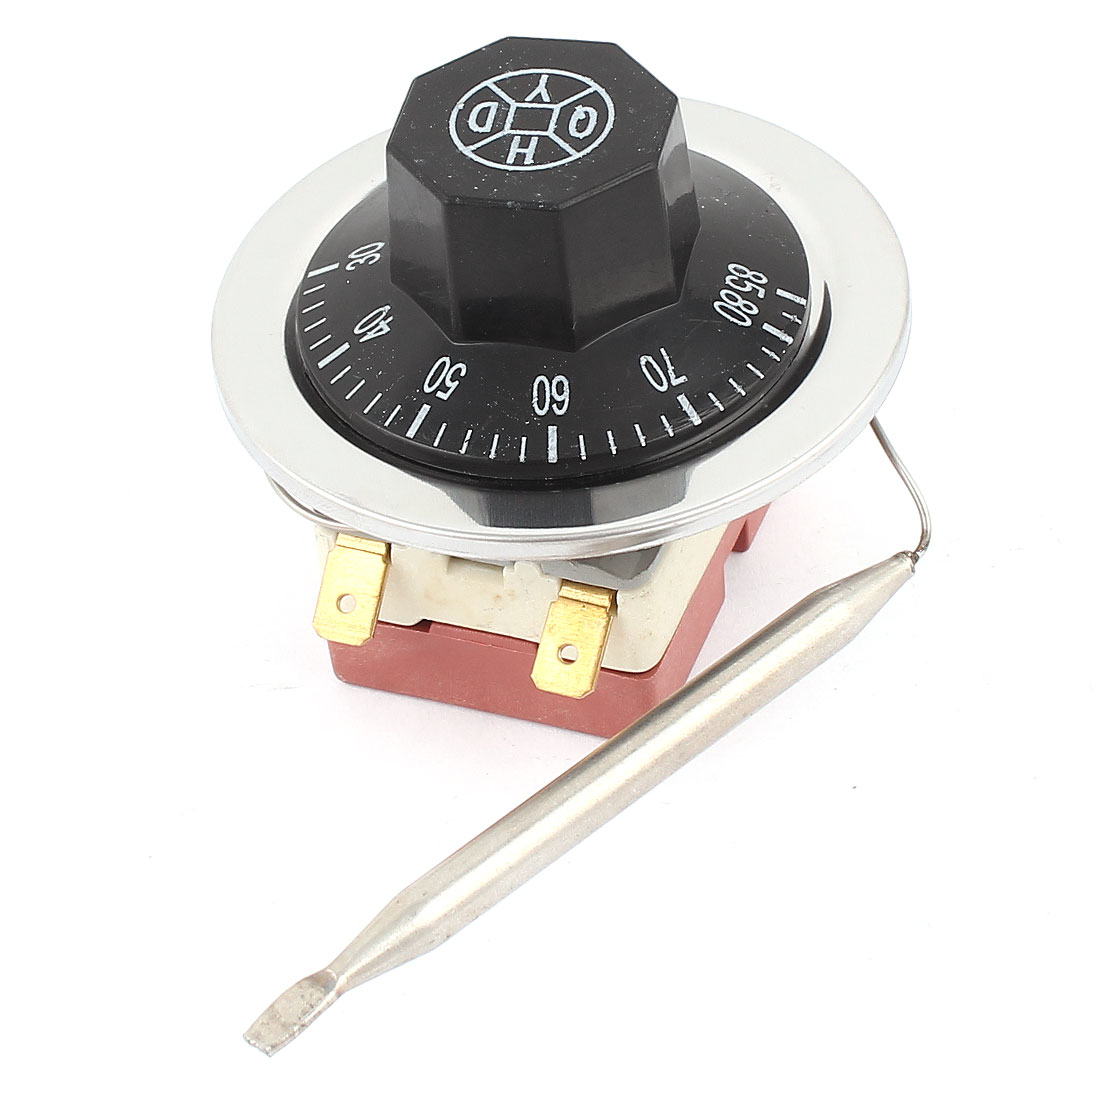 250V 16A 0-85C Electric Oven Water Heater Rotary Temperature Controller